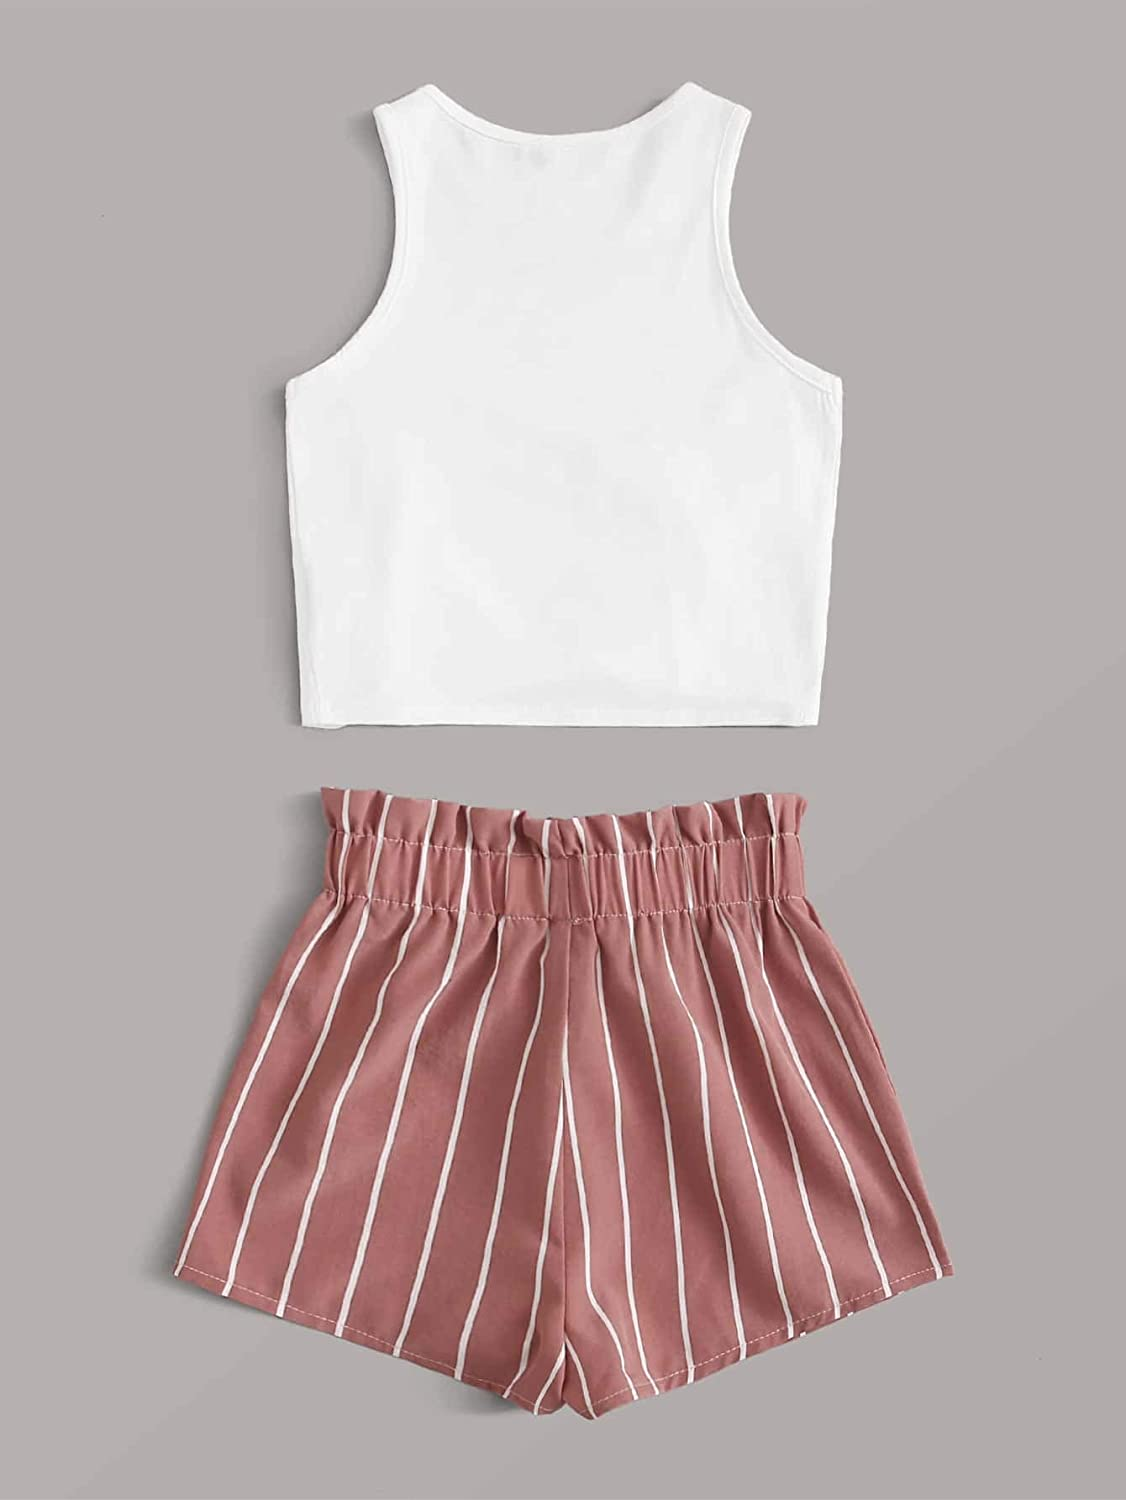 SOLY HUX Girls 2 Piece Outfits Tie Knot Front Tank Tops and Striped Shorts Set